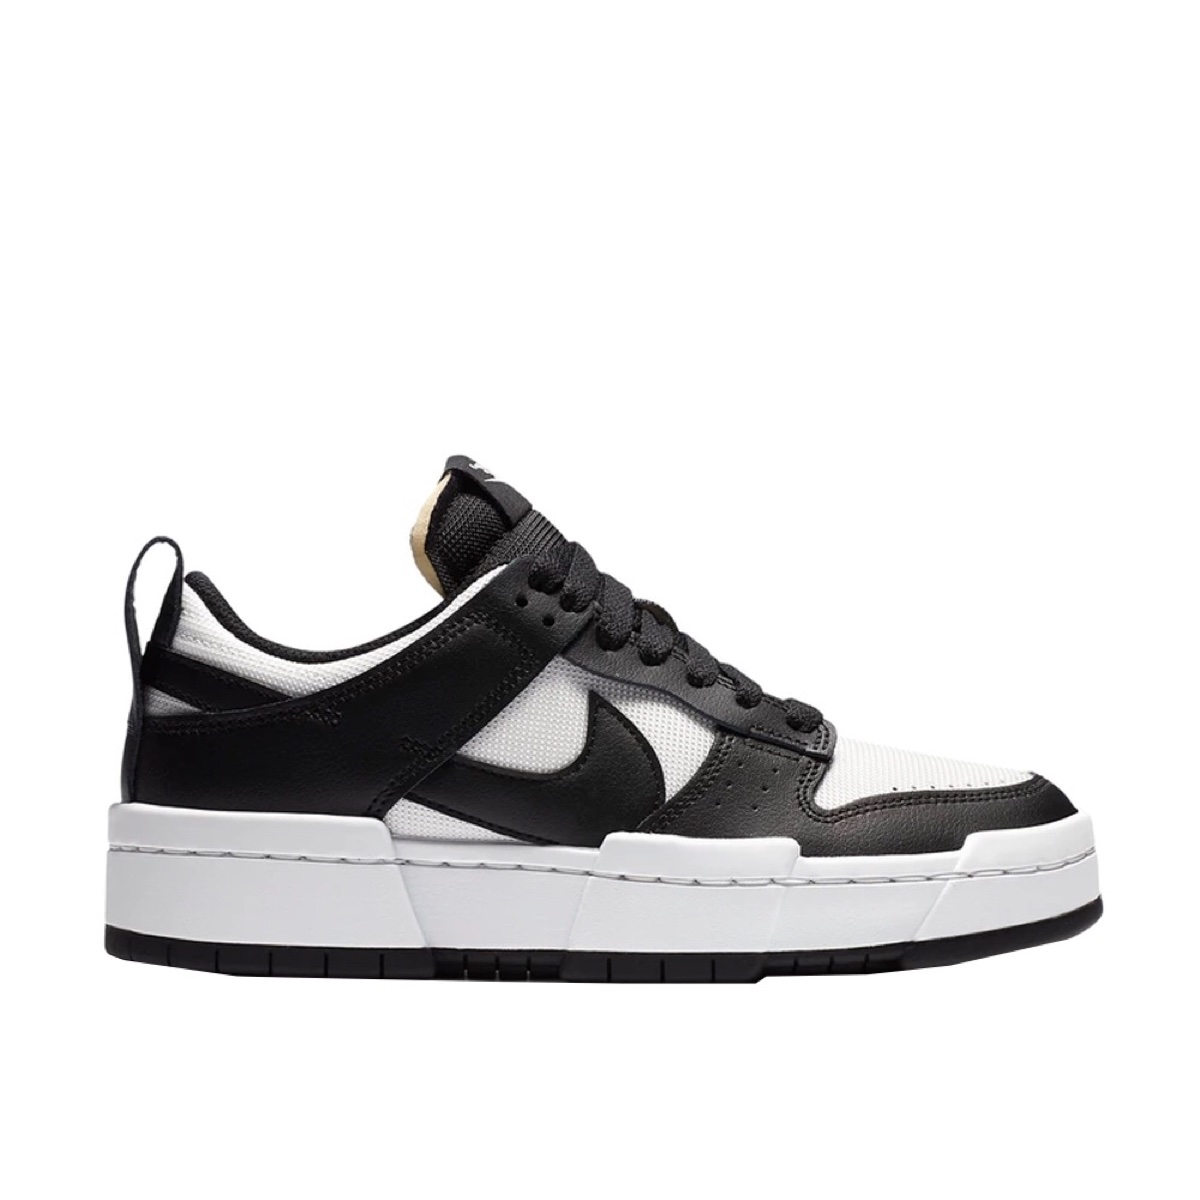 Nike Dunk Low Disrupt Black White (W)